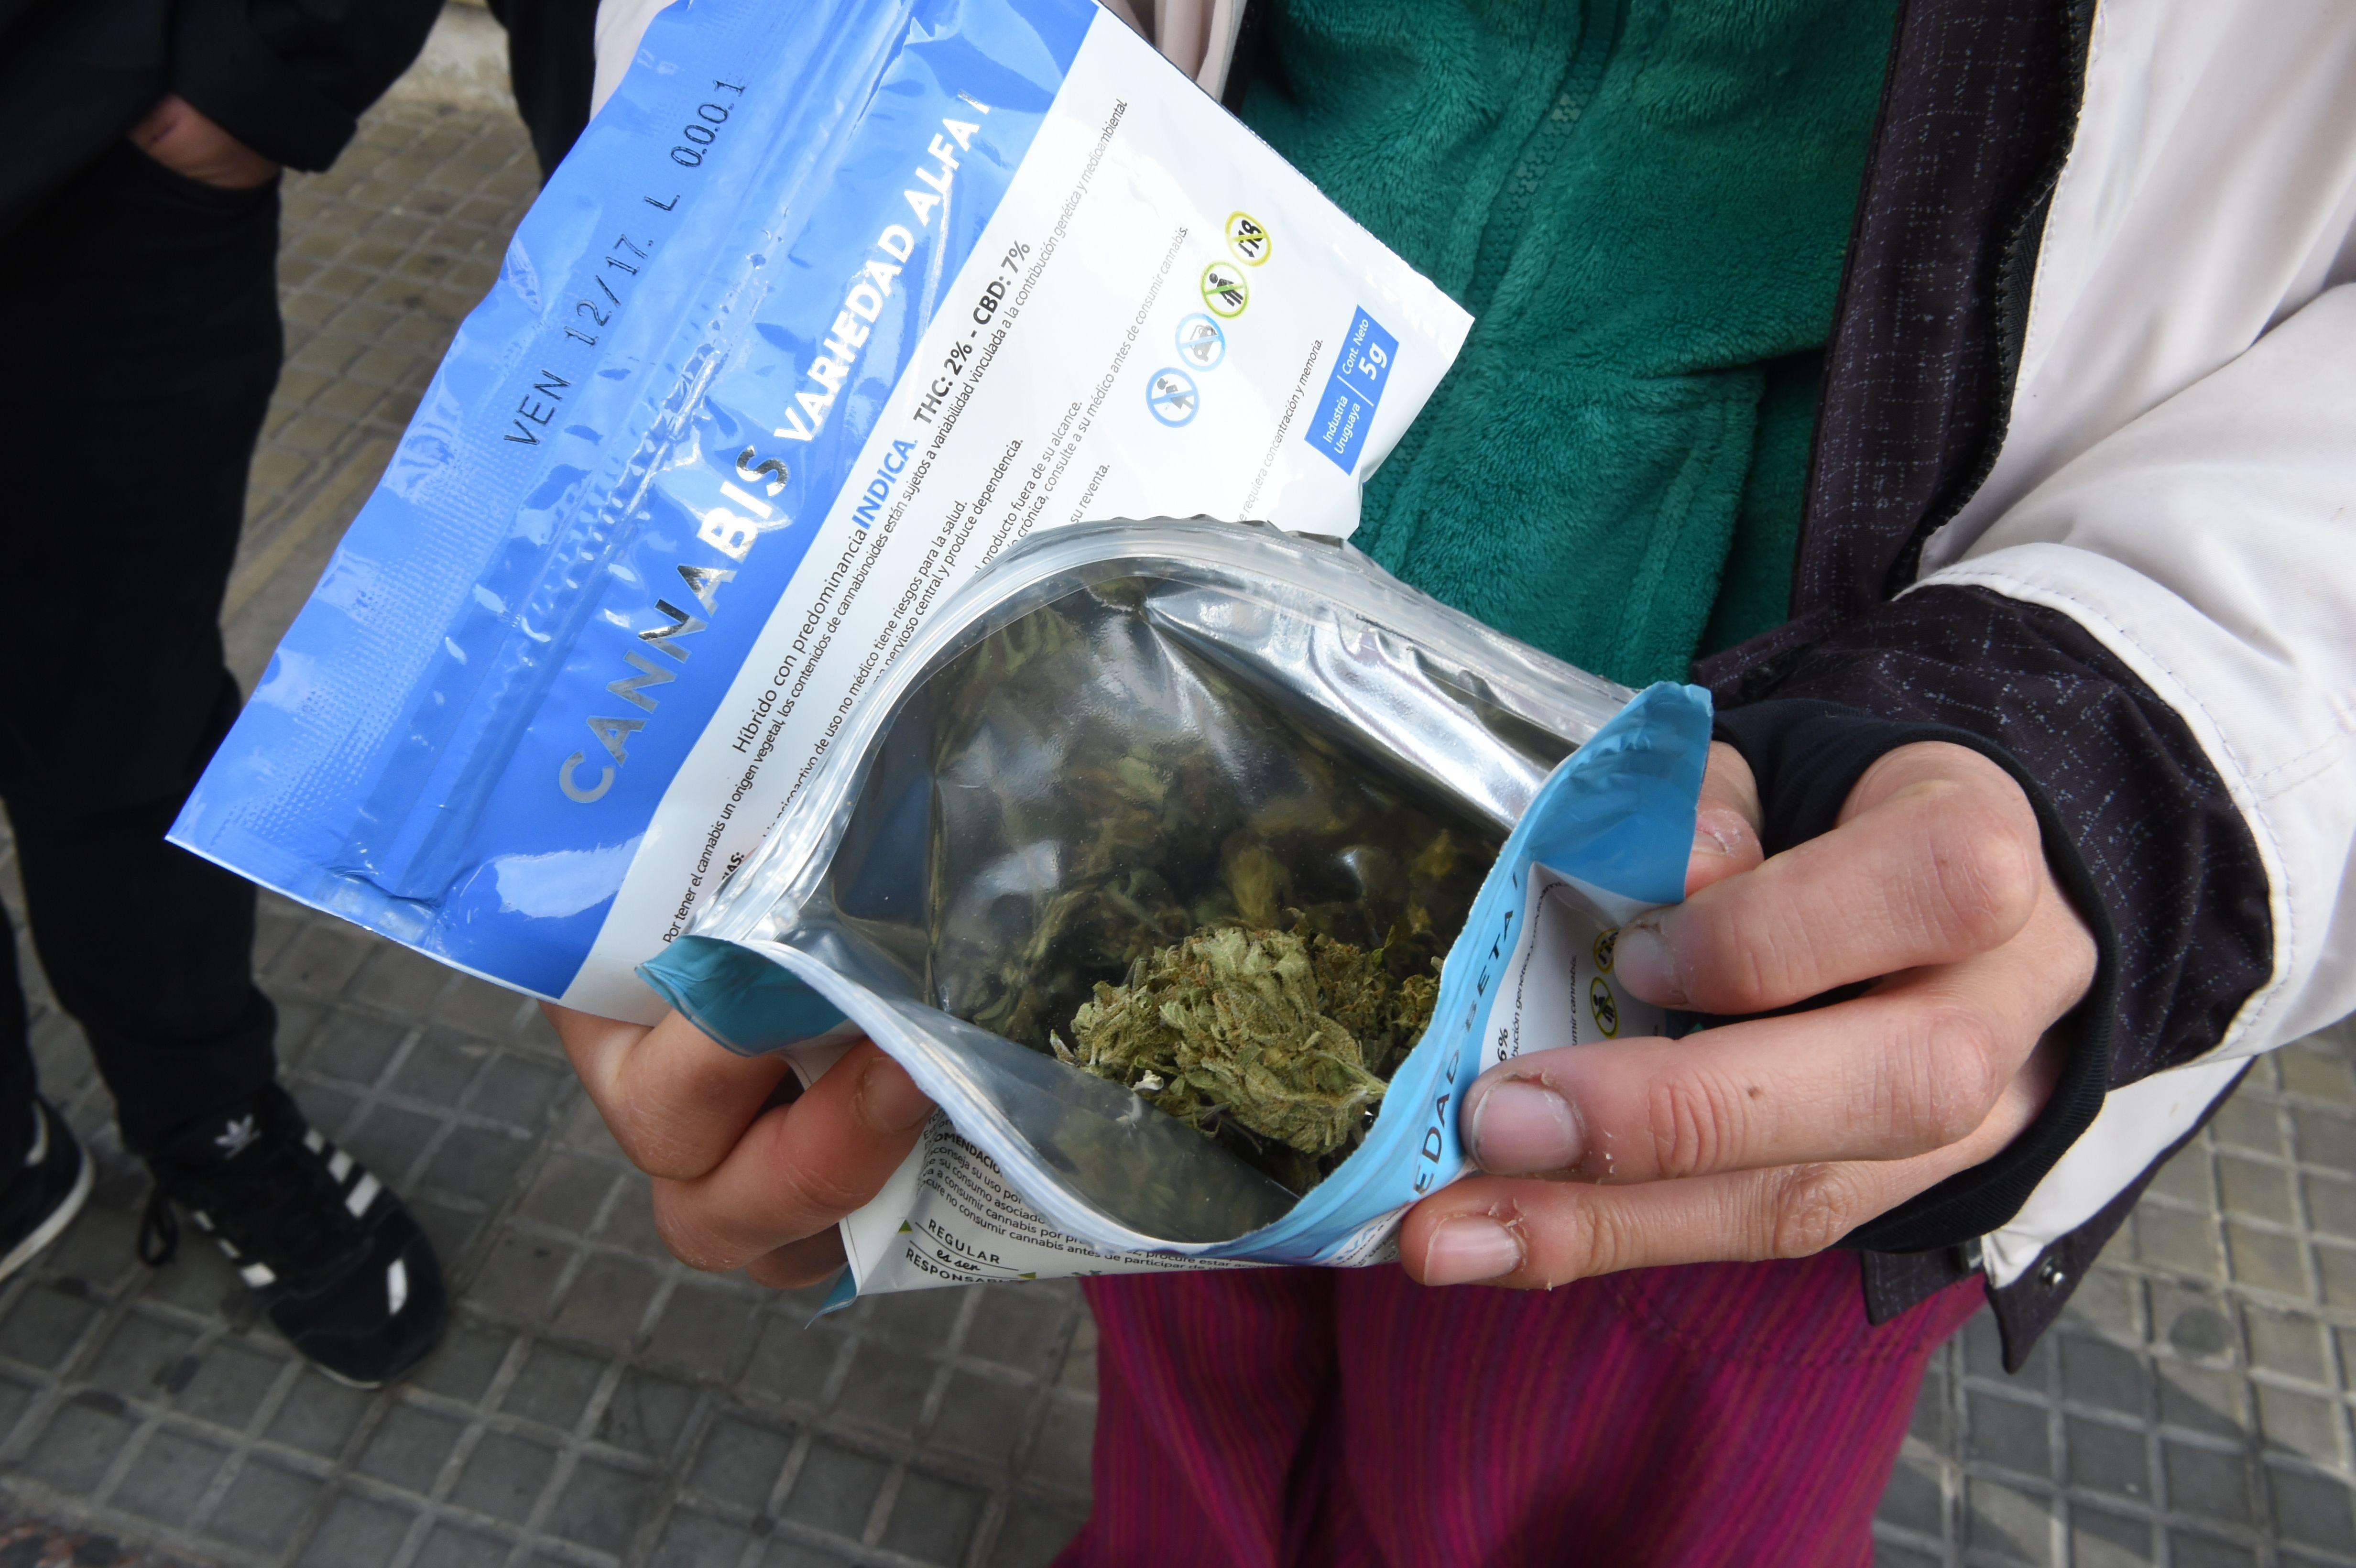 uruguay marijuana legalization leads to pot shortage as demand